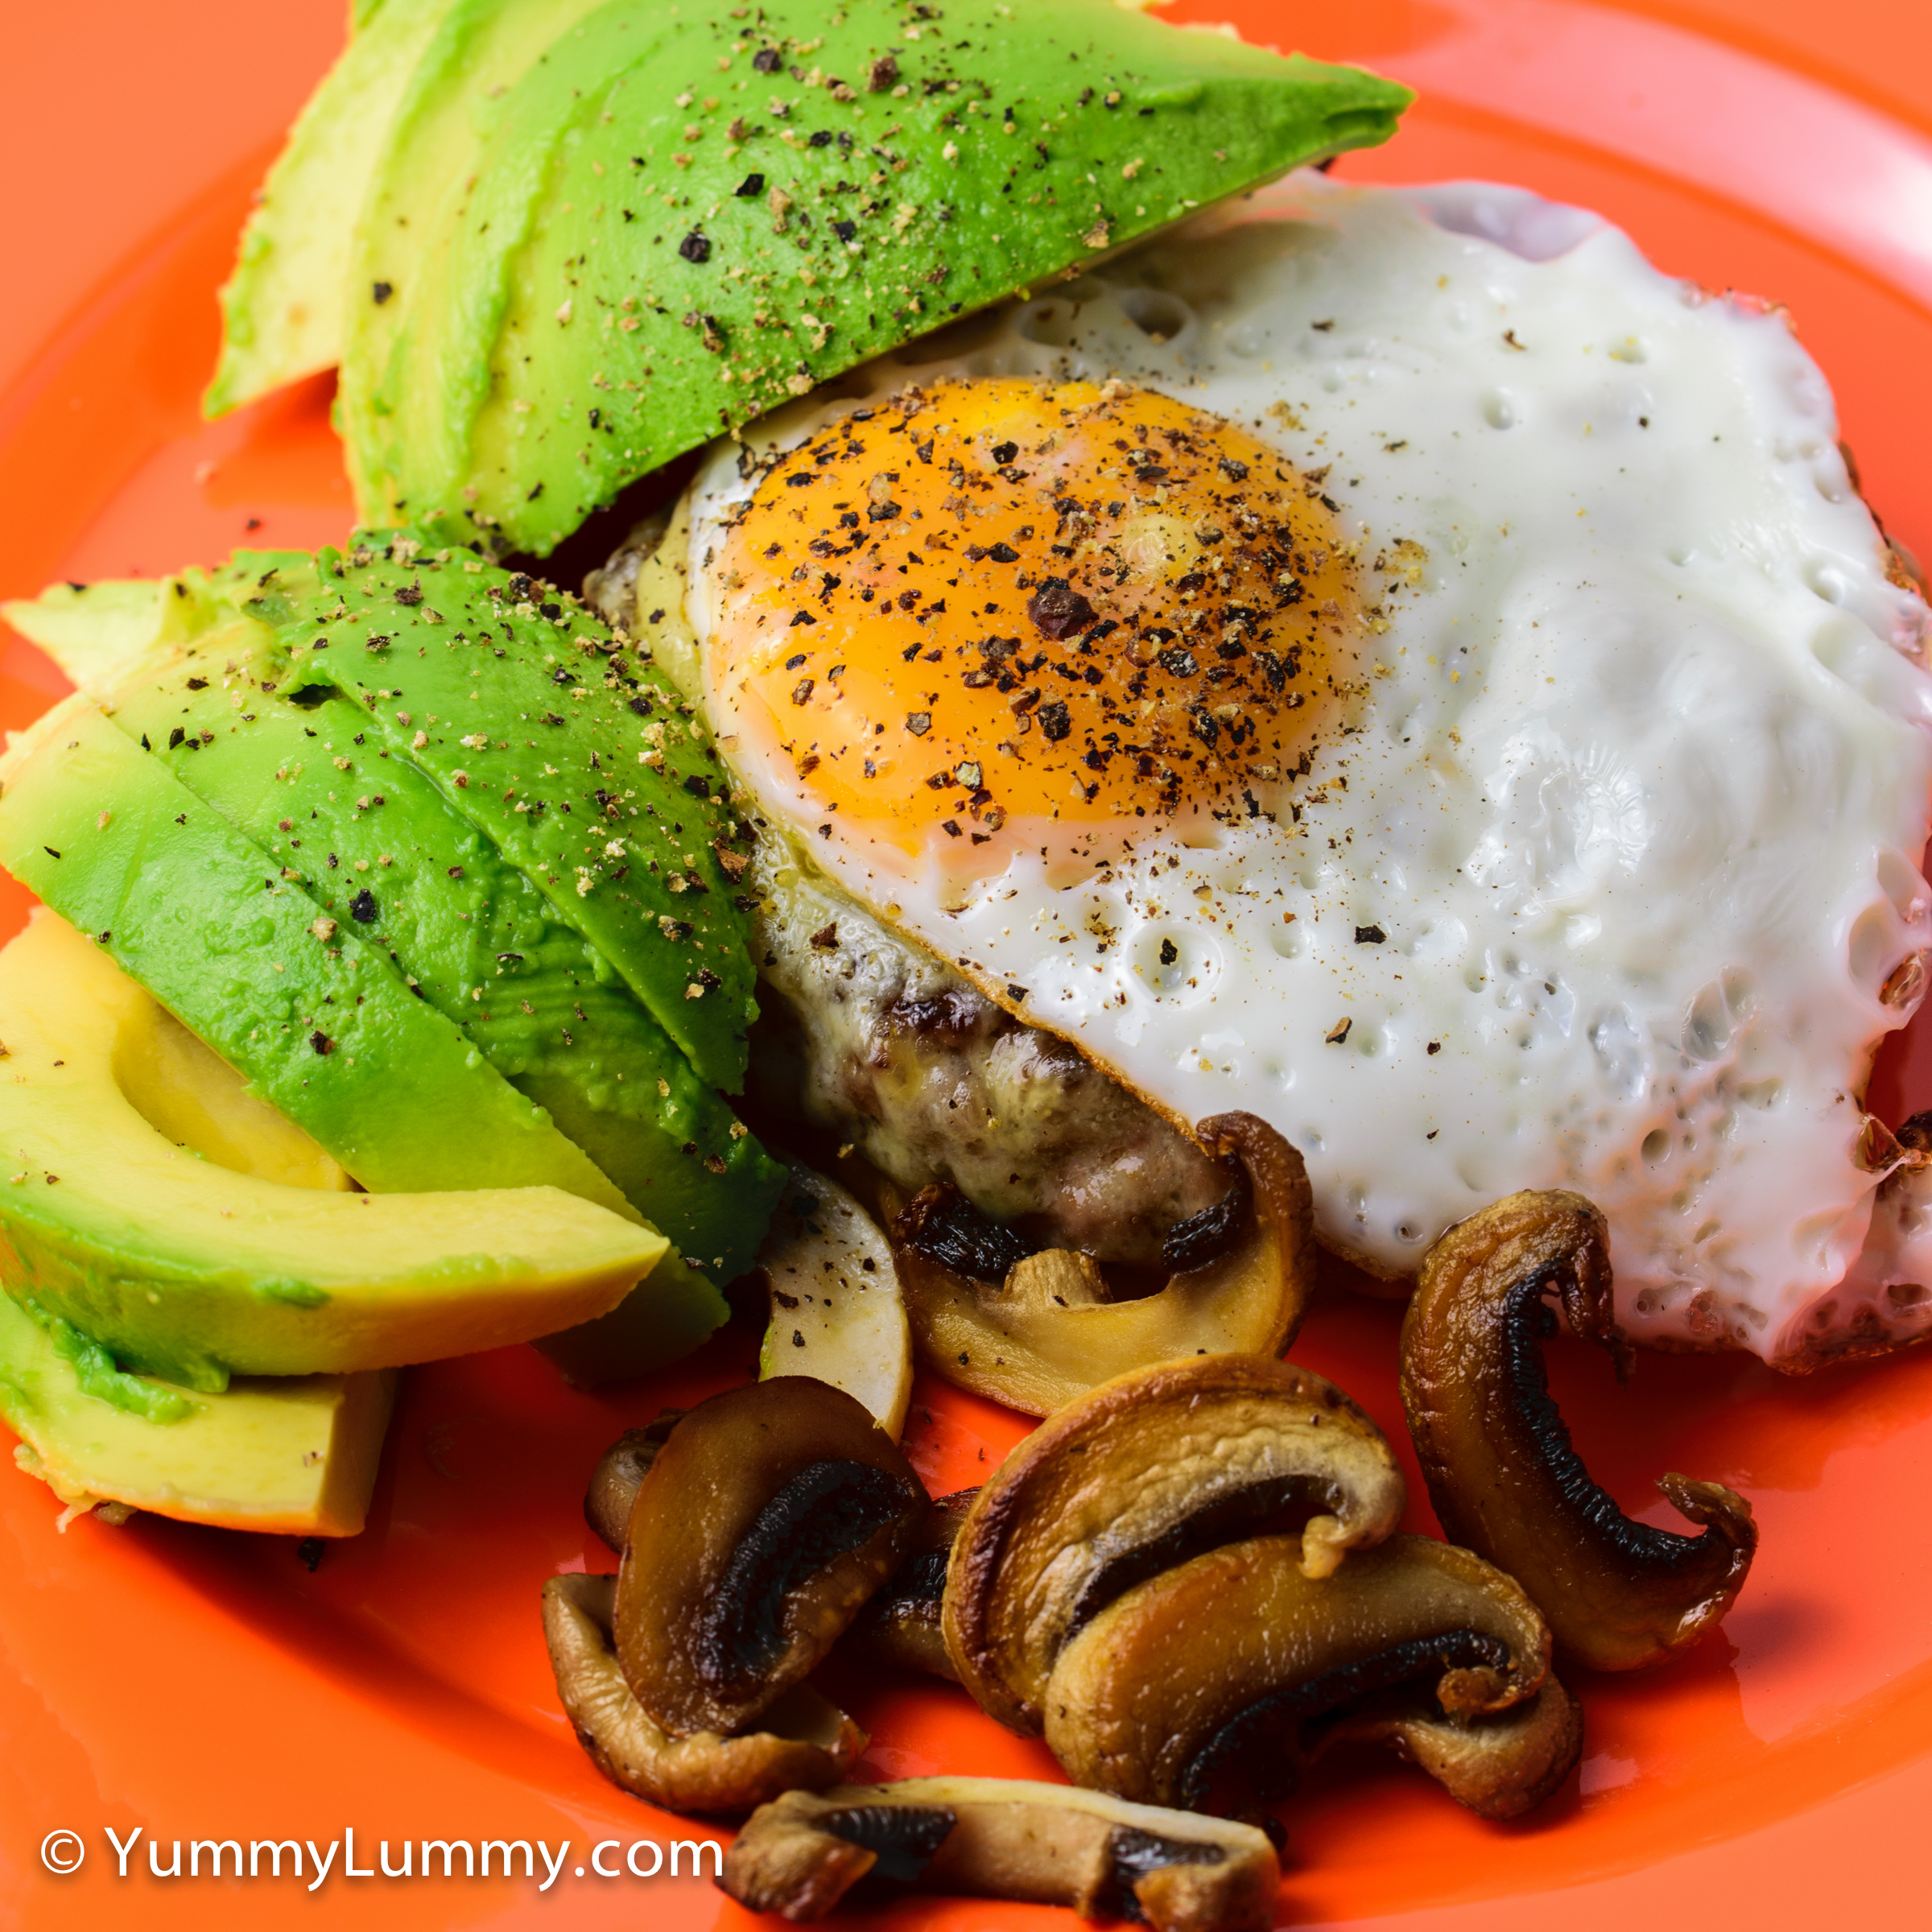 Good morning Monday. Nude burger with avocado, fried egg, mushrooms and tasty Coon cheese for breakfast